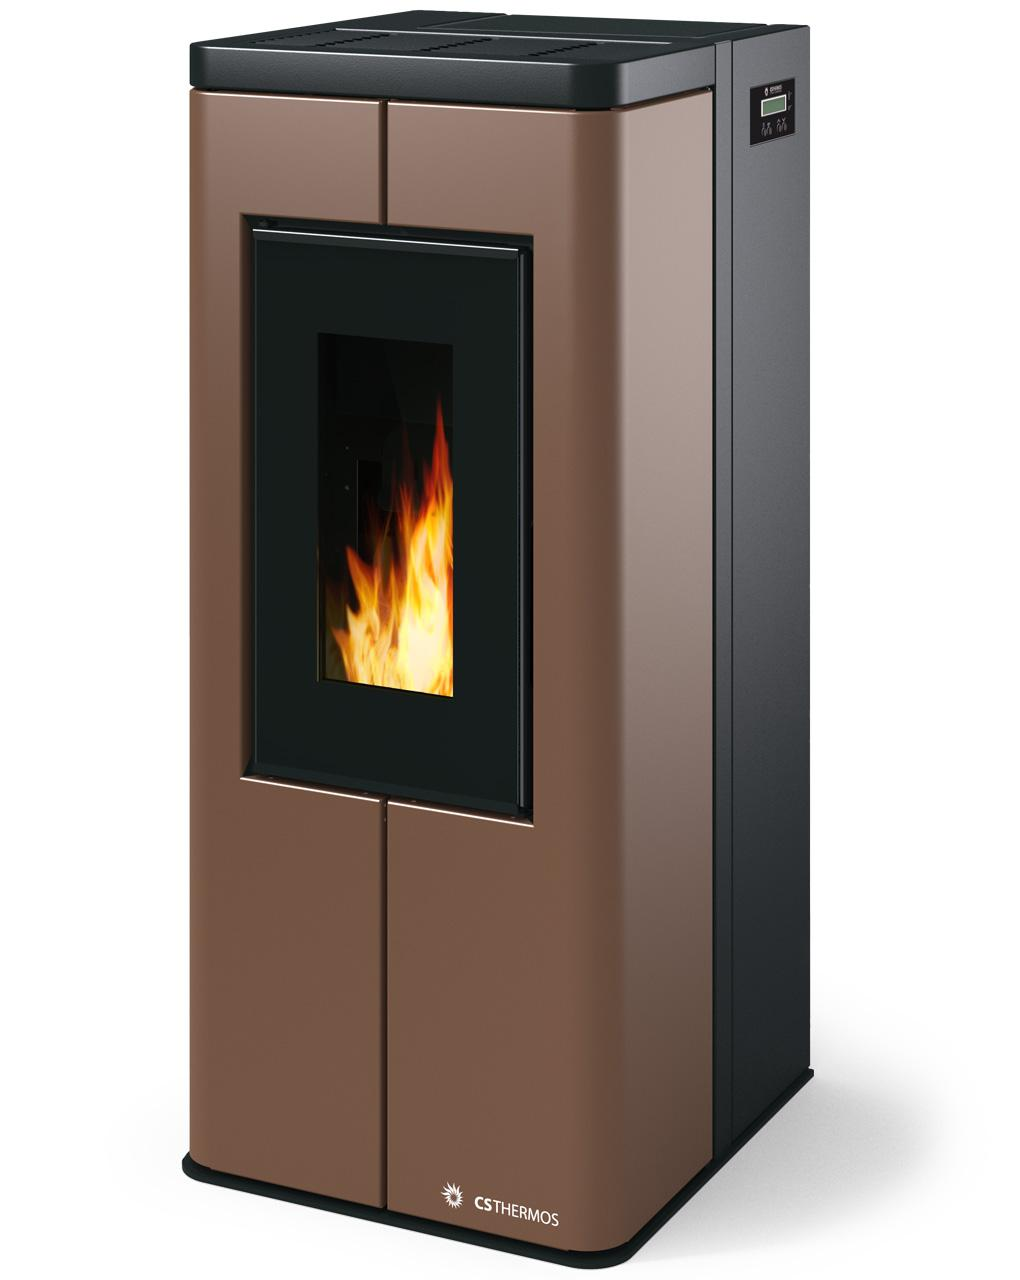 Stufa a pellet biomassa SCRIGNO 8 kW CS Thermos